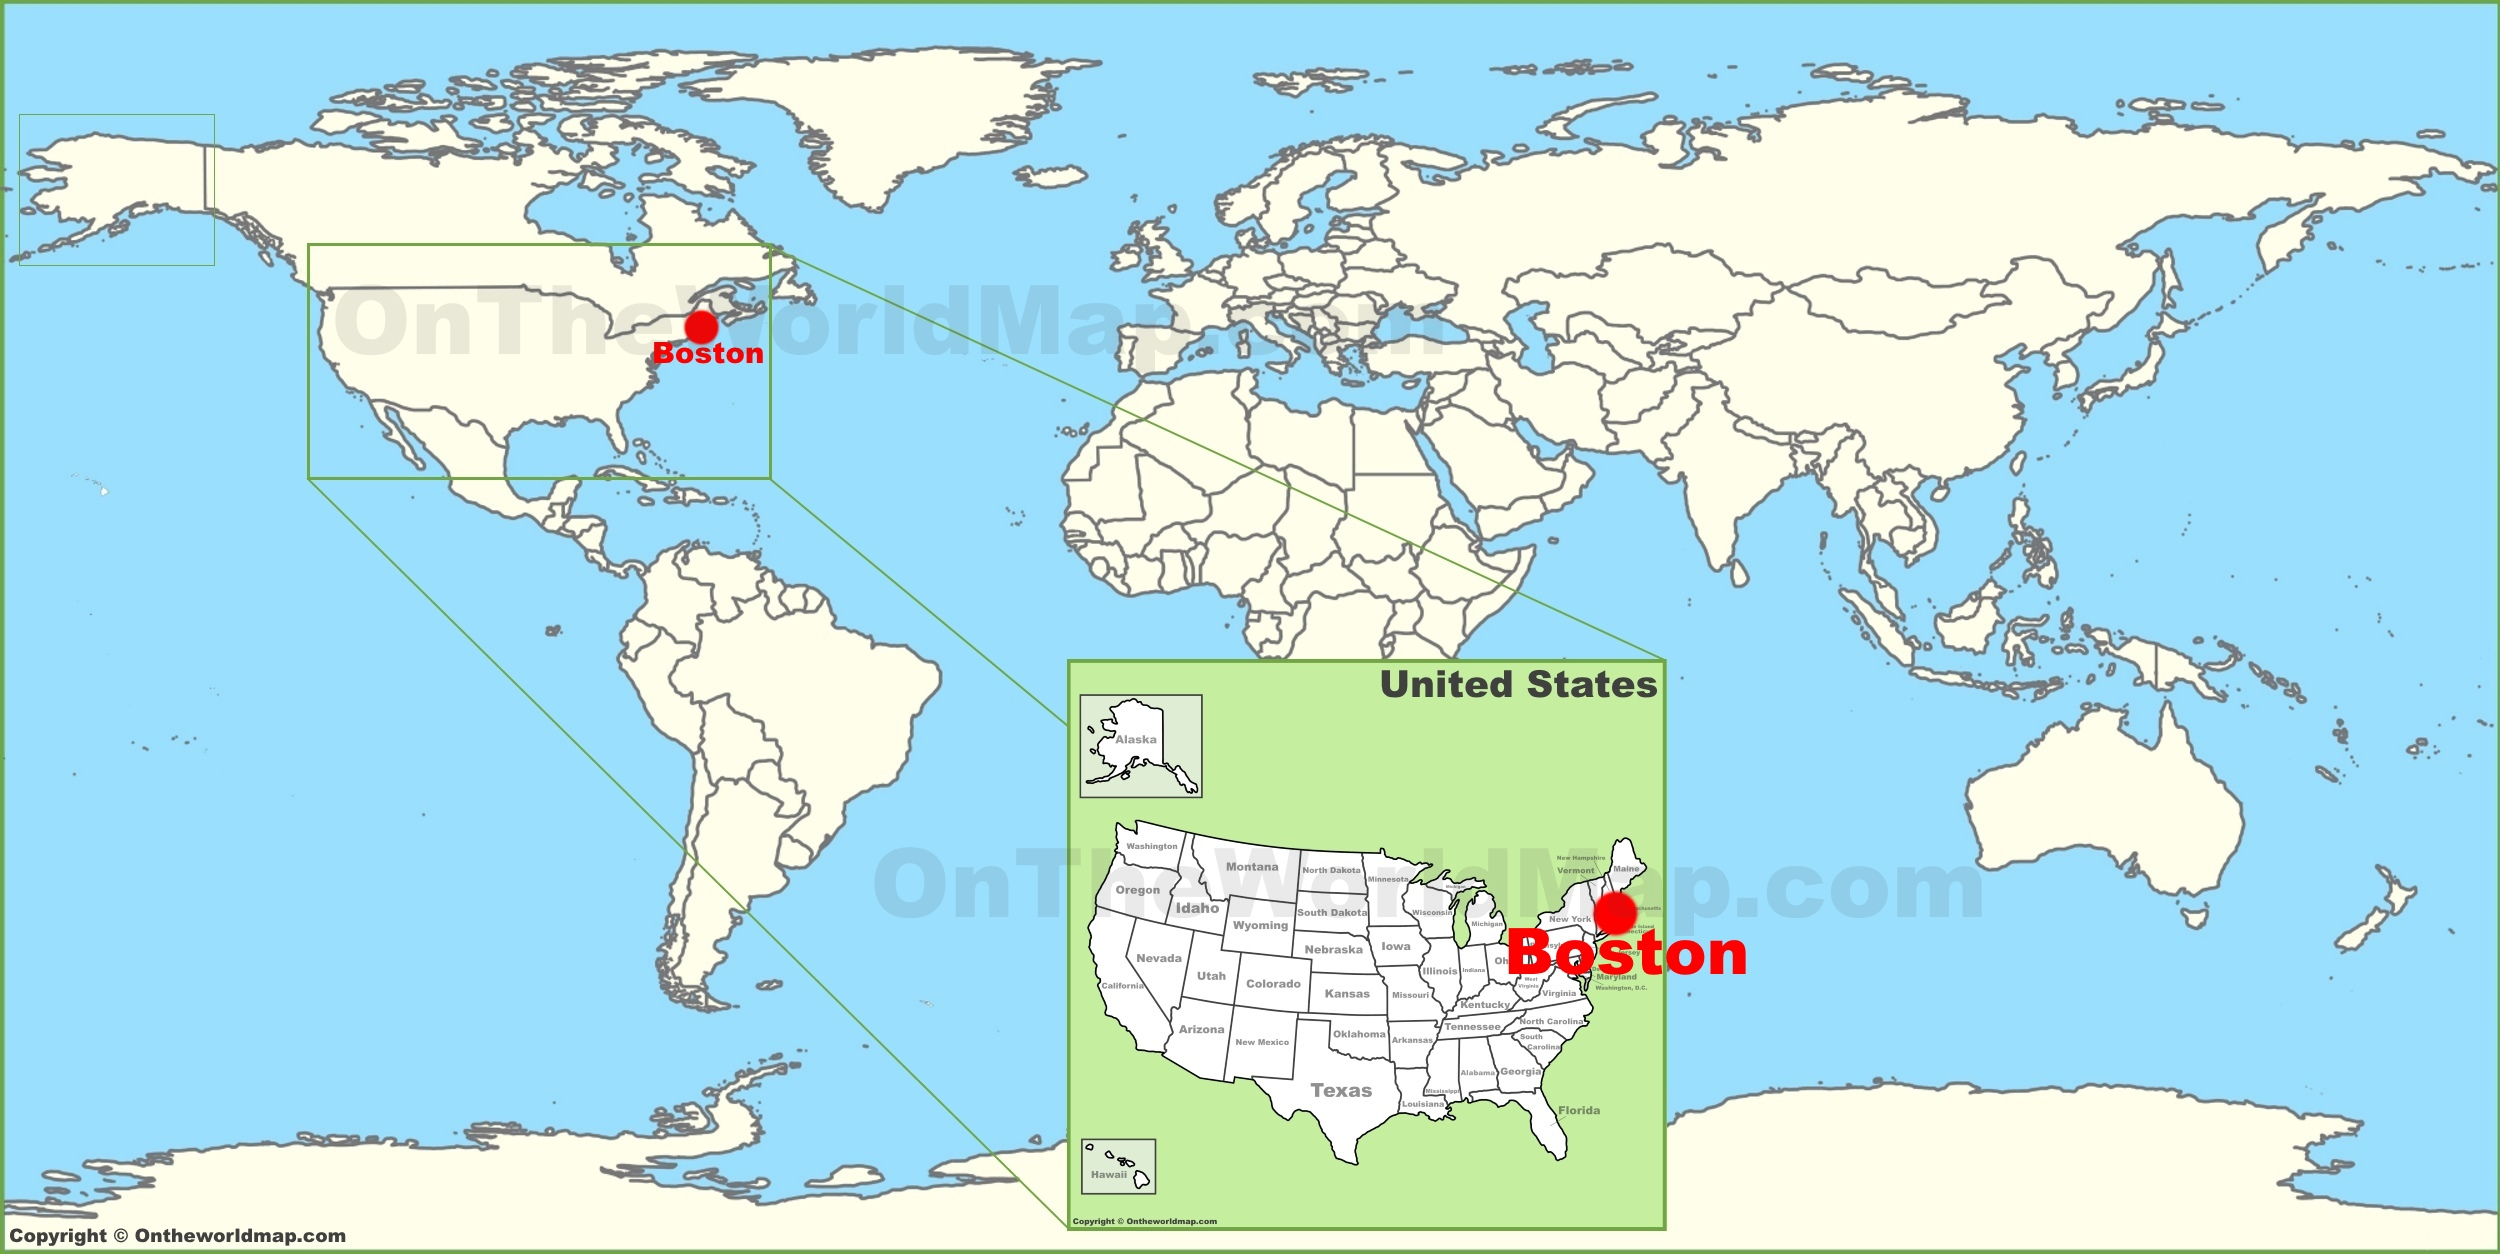 Boston Location On The US Map Boston Maps And Orientation Boston - Miami on us map